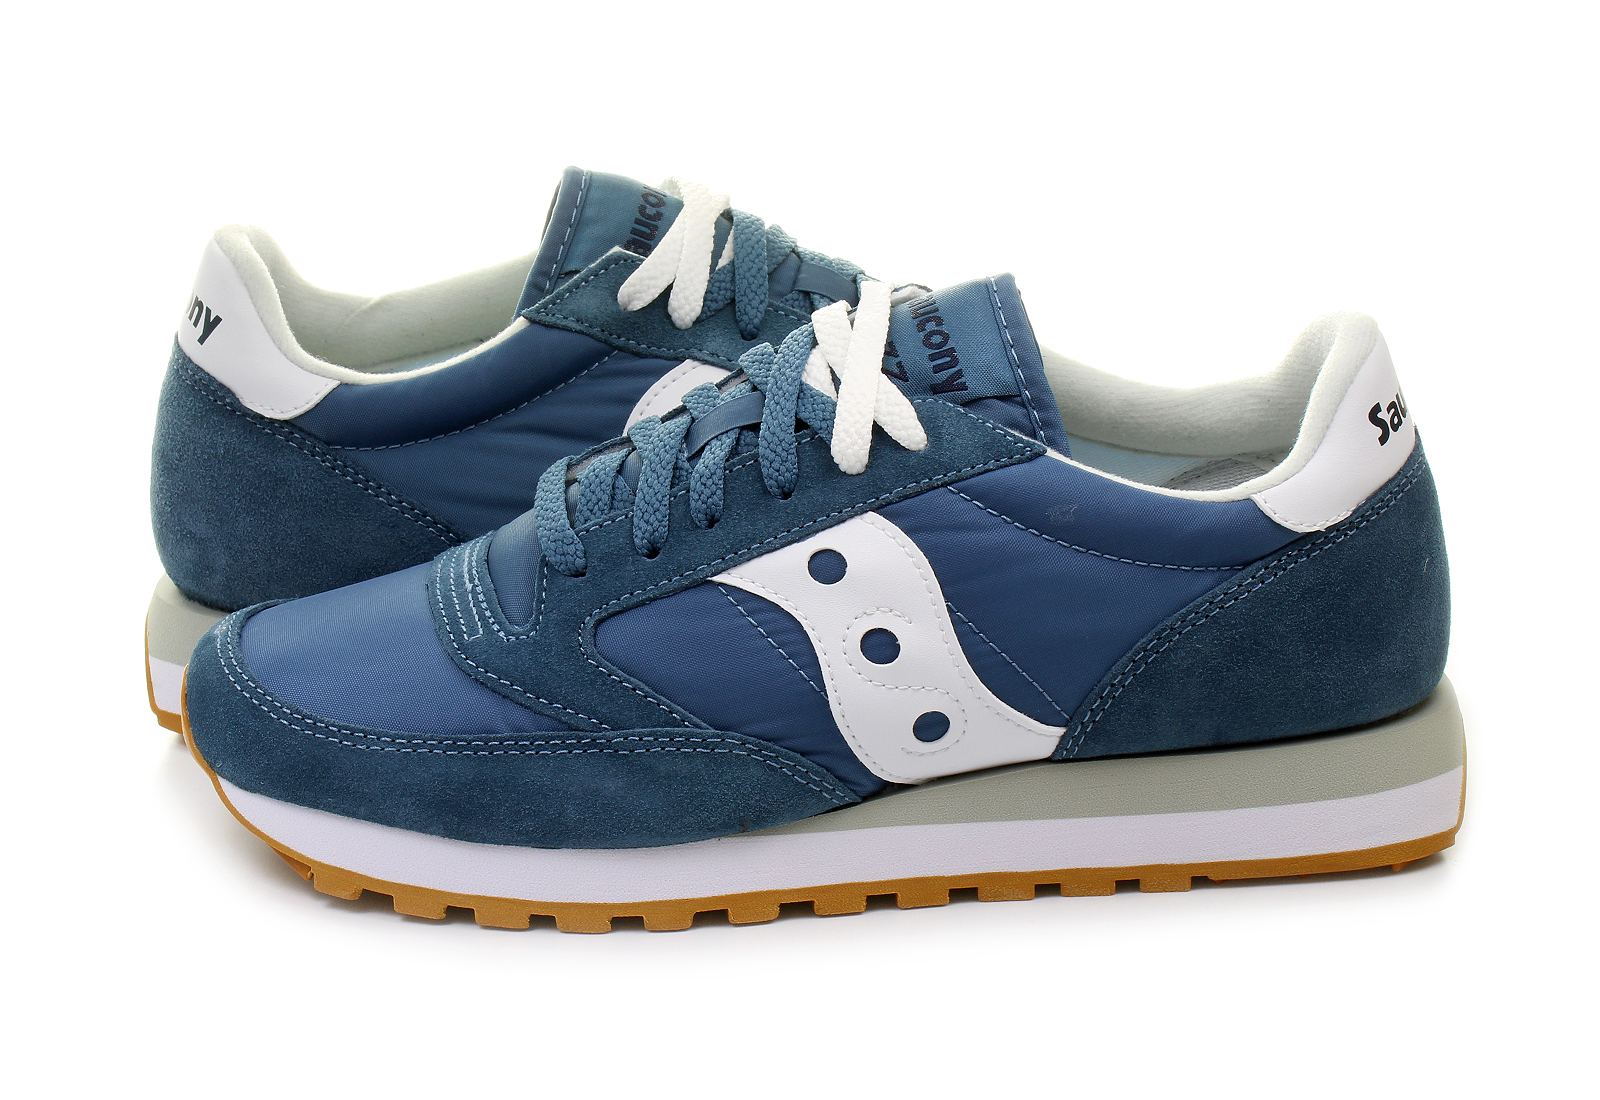 Toddler Baby Sneaker Saucony Saltwash Navy Nitrous Purchasing. Purchasing. Become our supplier and learn all you need to know about purchasing at Viega. Catalogue. Catalogue. Our Products. Spare Parts. Spare Parts. Spare Parts Catalogue. Innovations. Innovations. Best solutions for highest requirements. Topics.